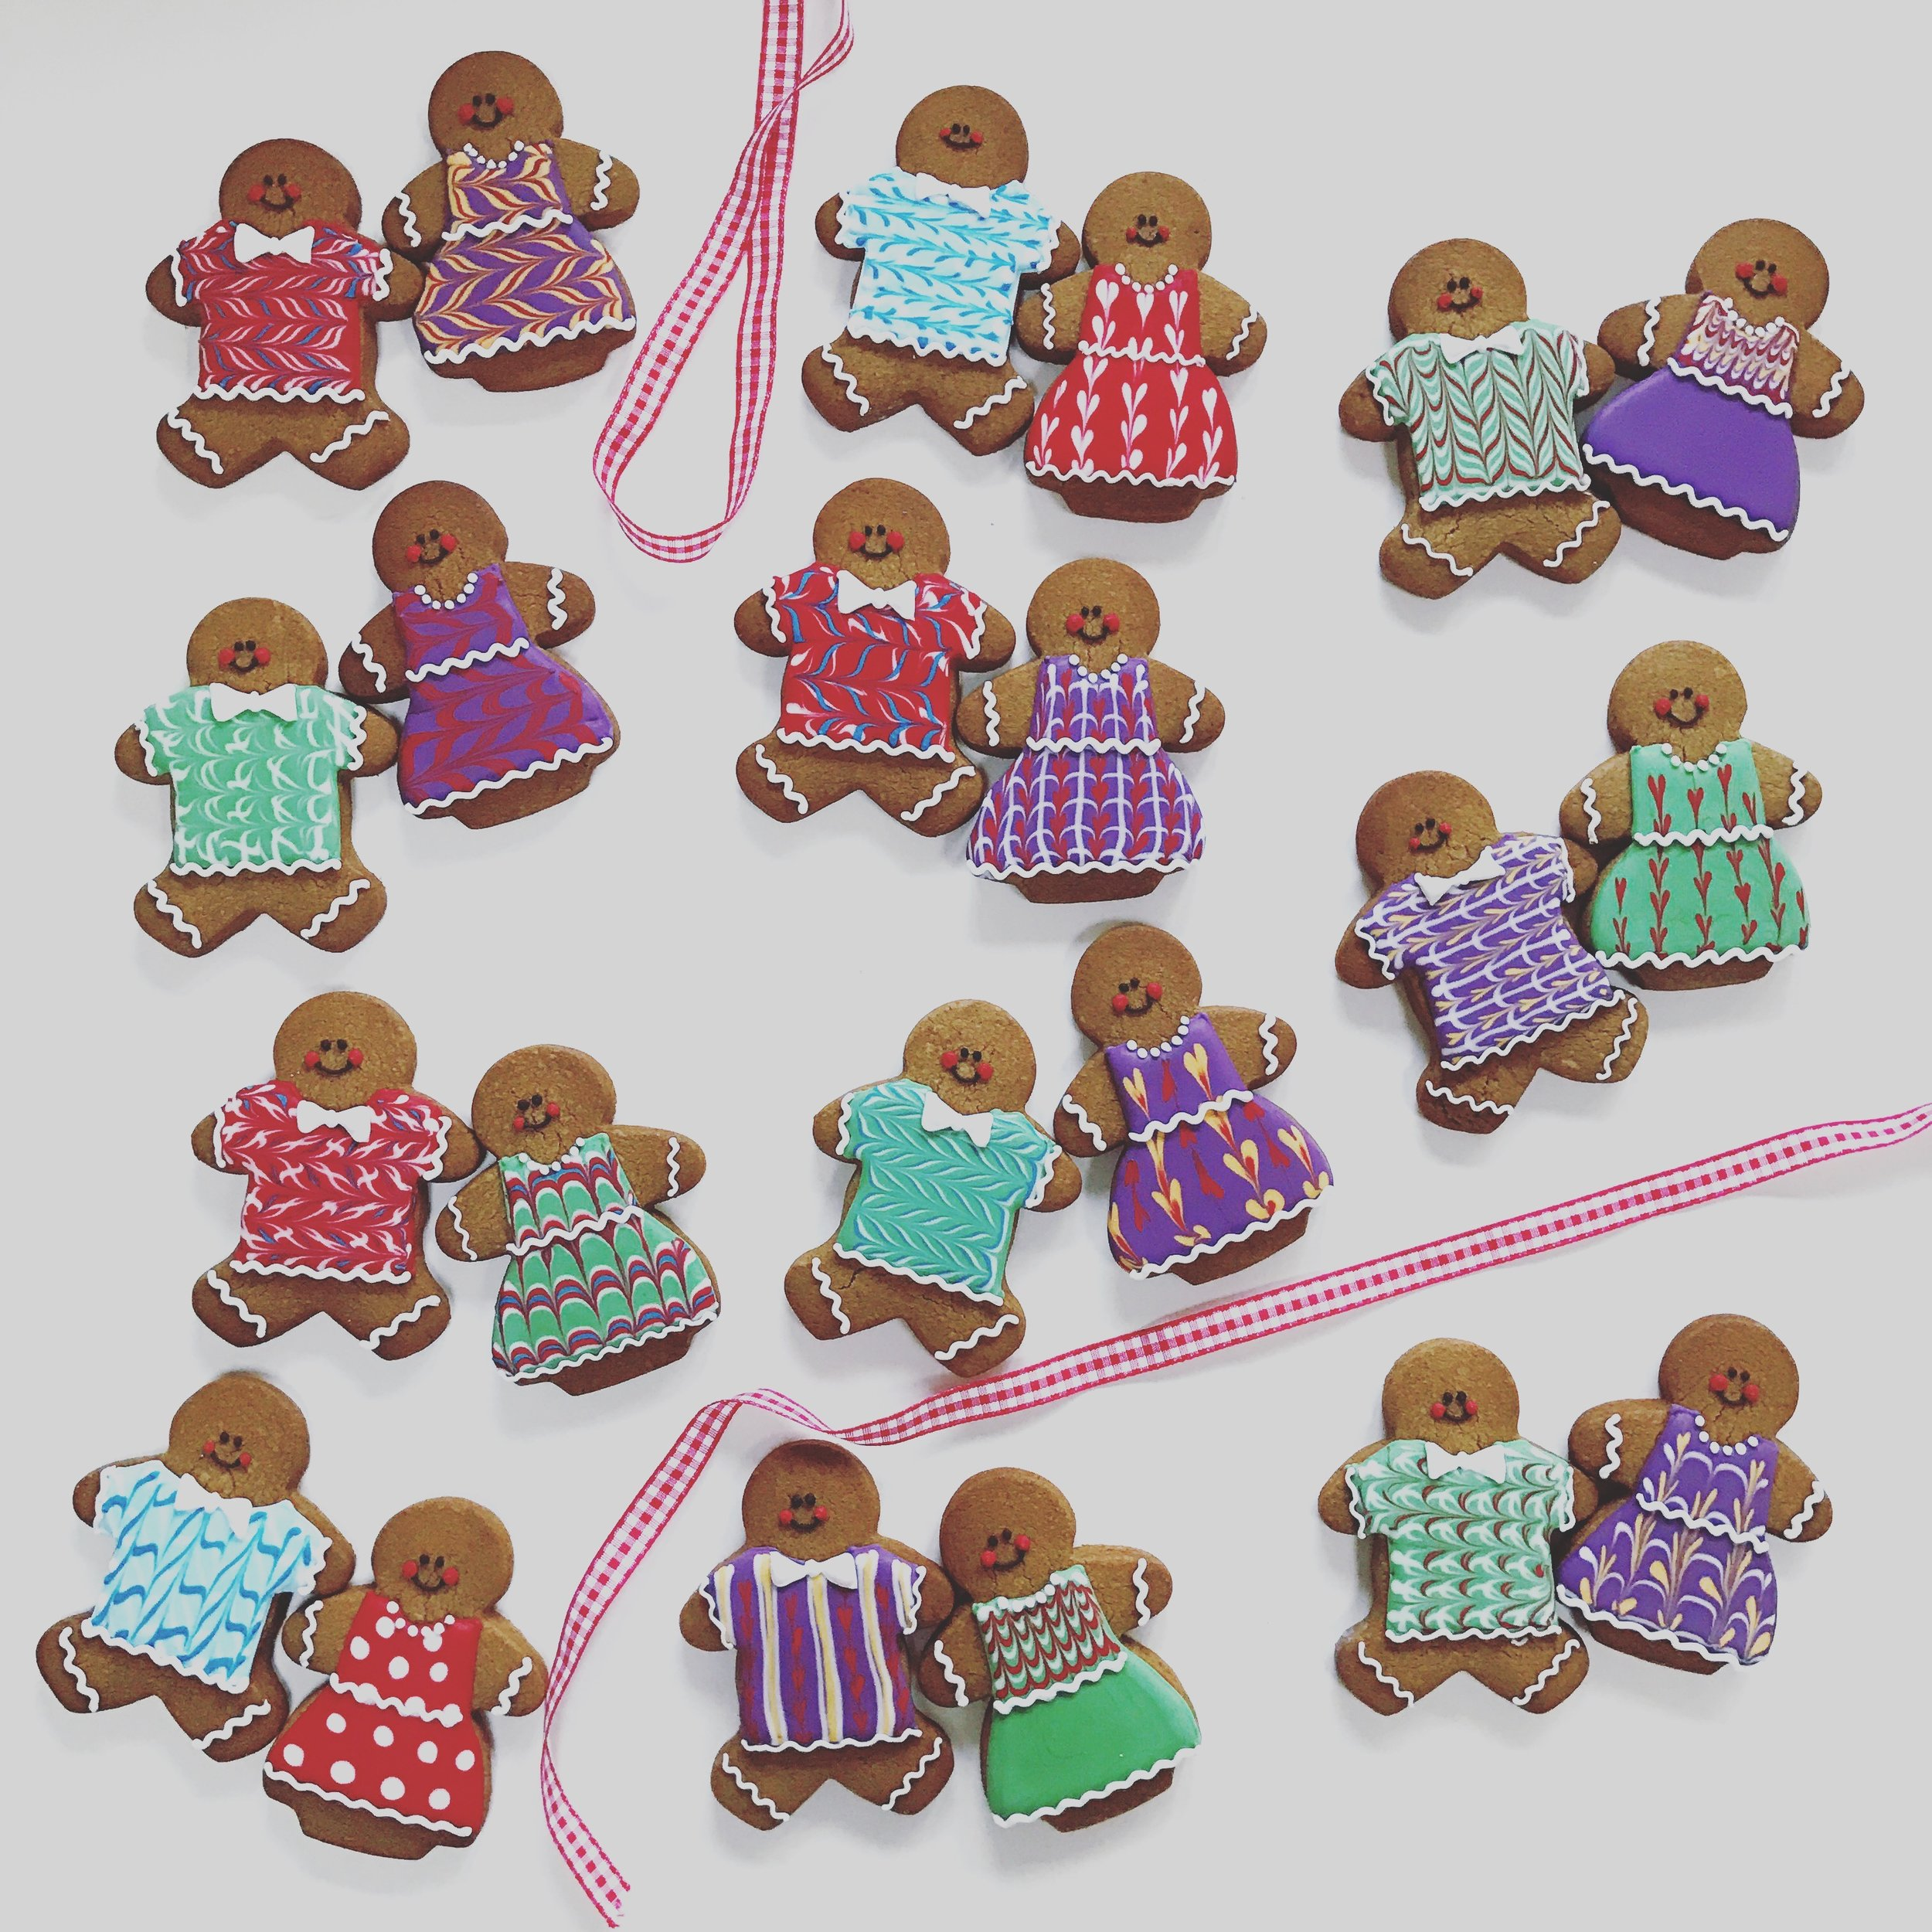 Iced Gingerbread Couples -